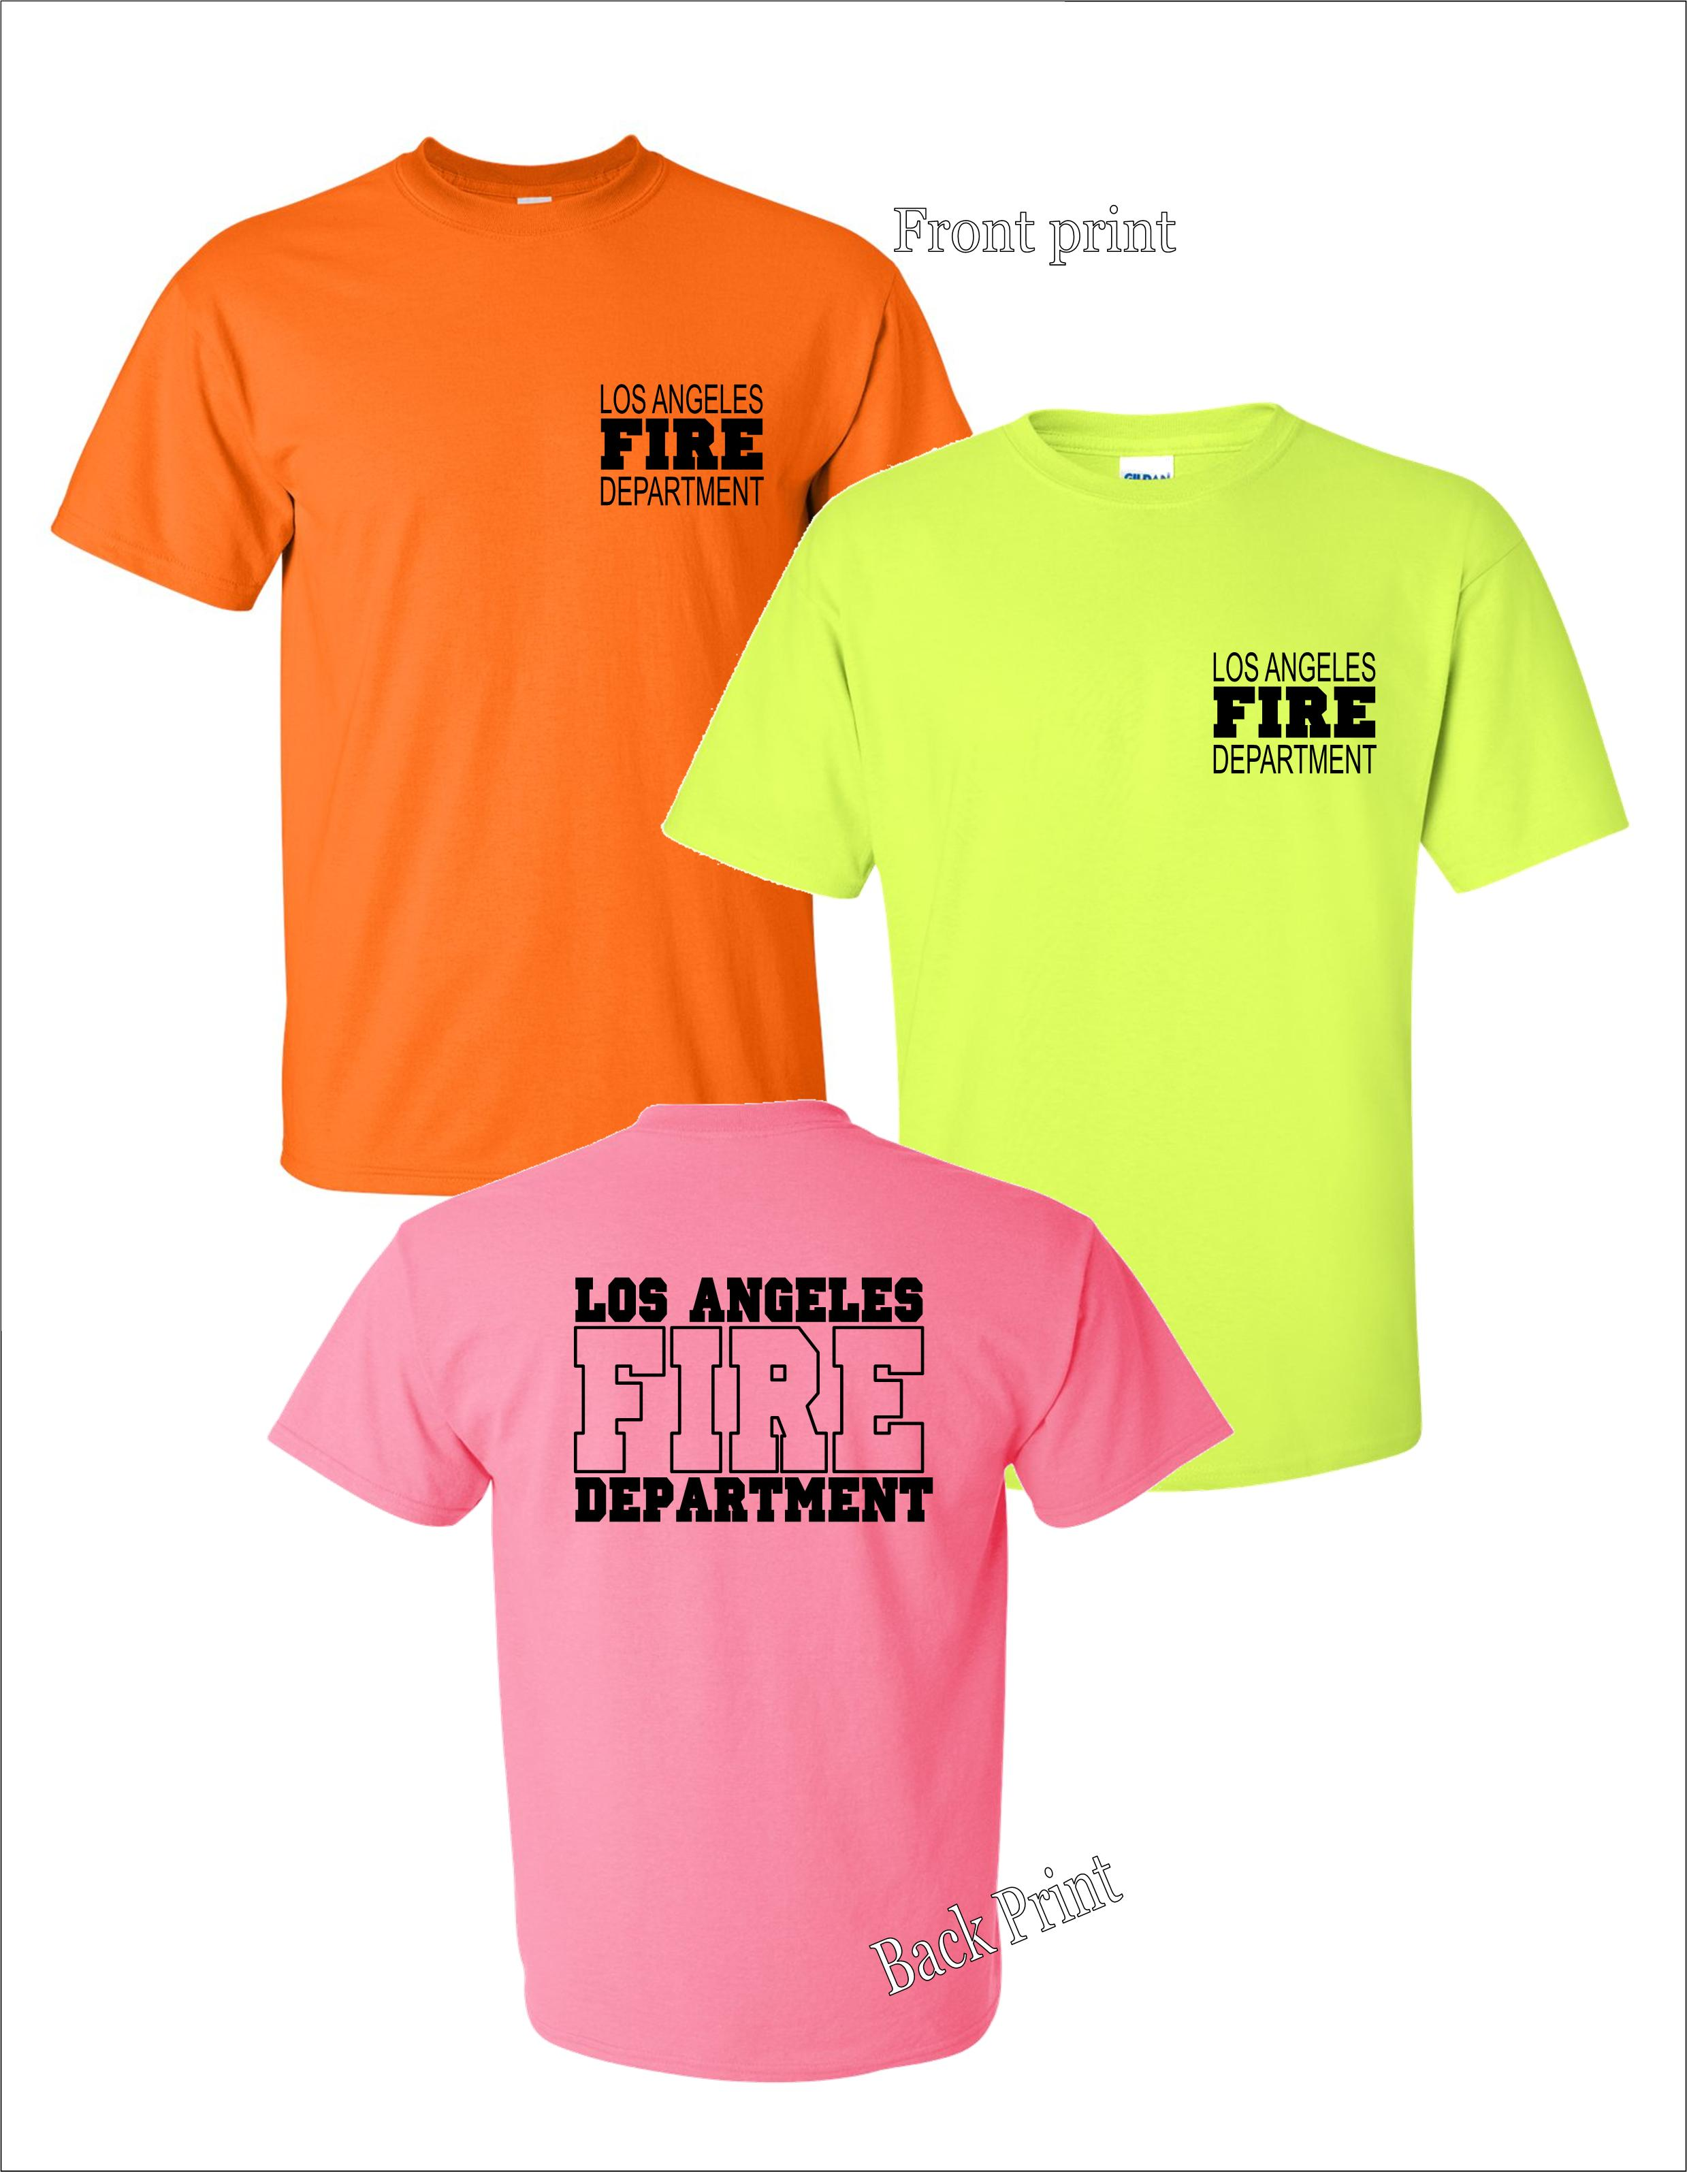 Lafd uniform logo print neon colors t shirts fire attire for Neon custom t shirts